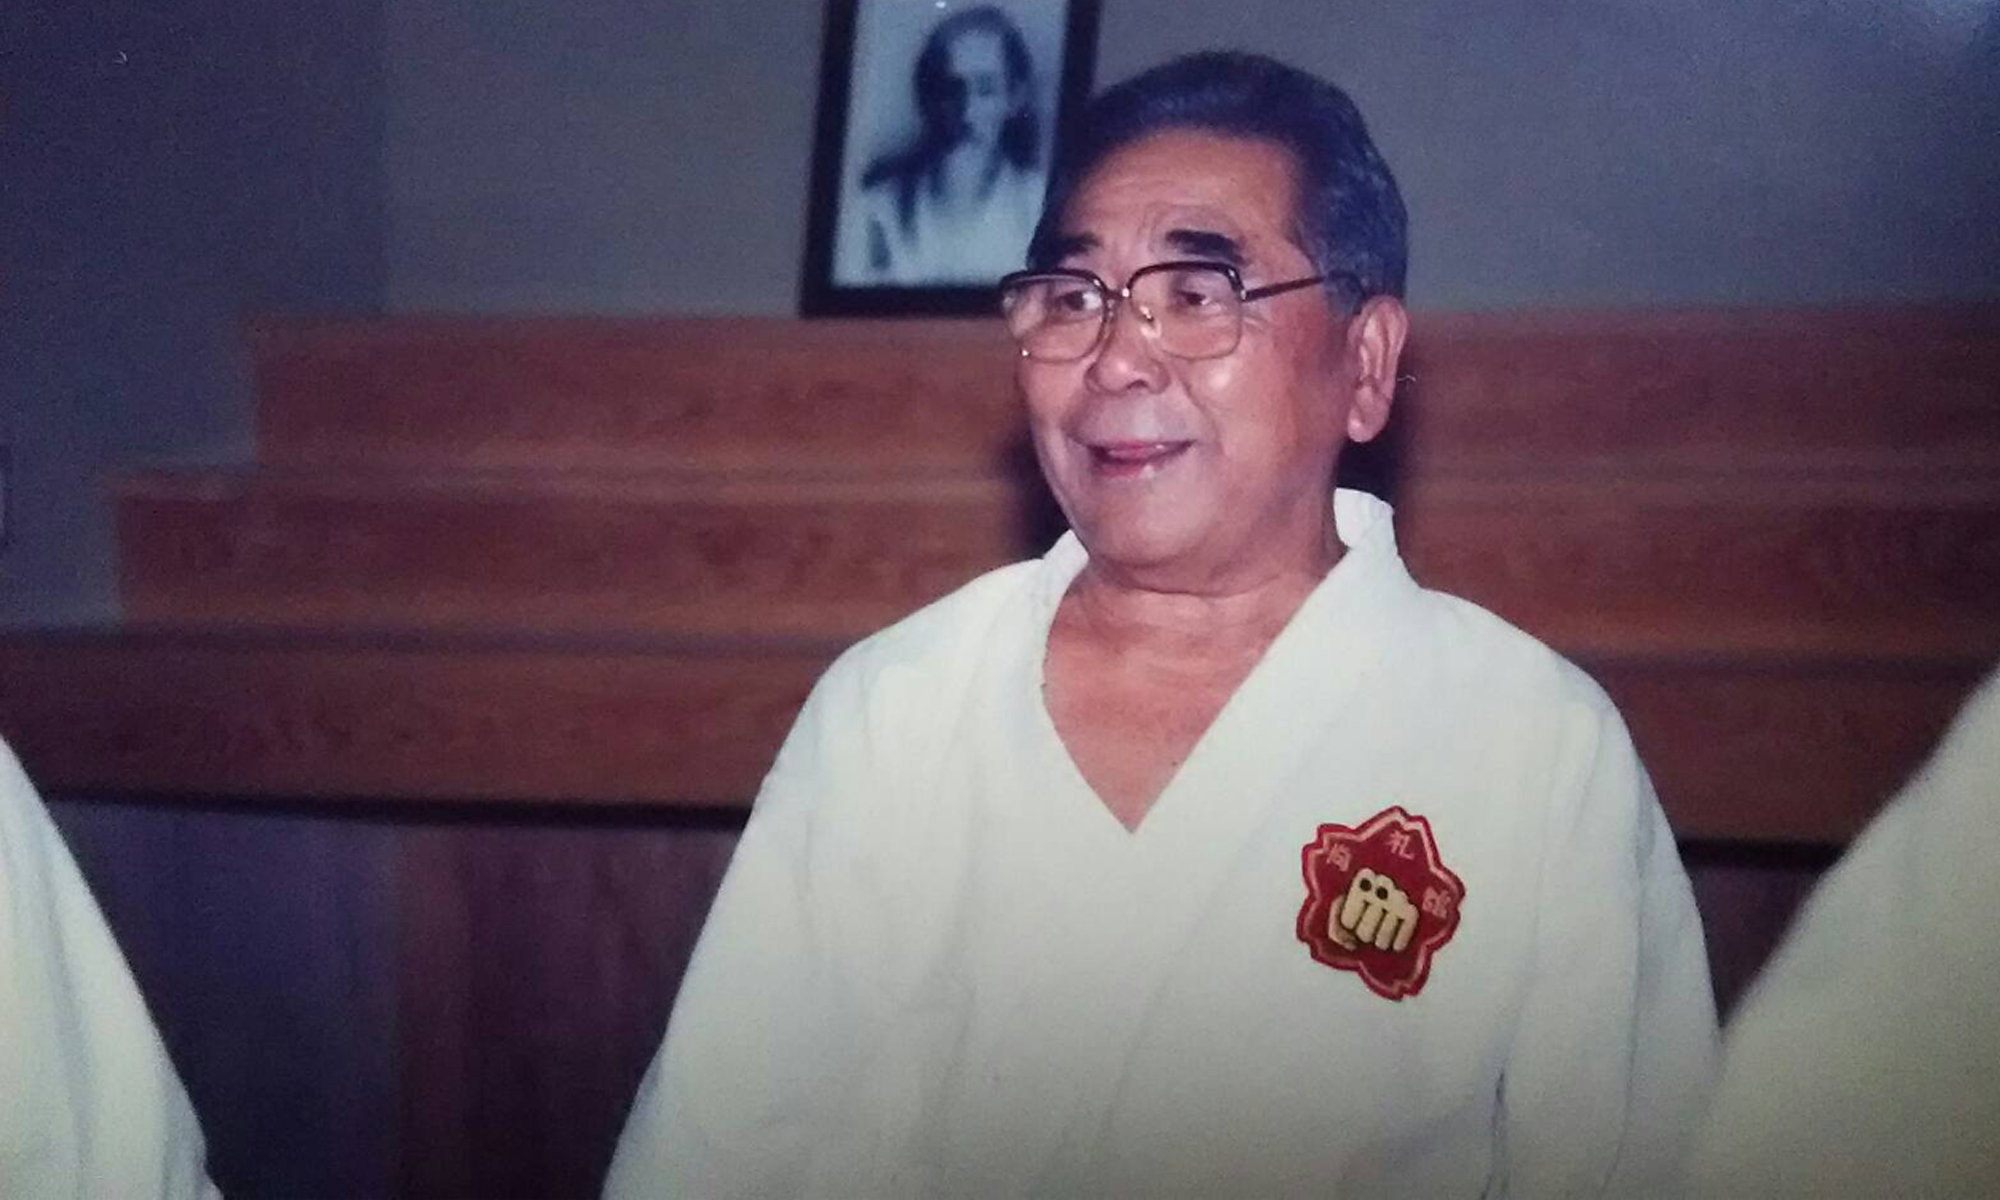 A look into the past – a video of Master Toguchi at the Nakano Shoreikan Dojo (from MX TV)